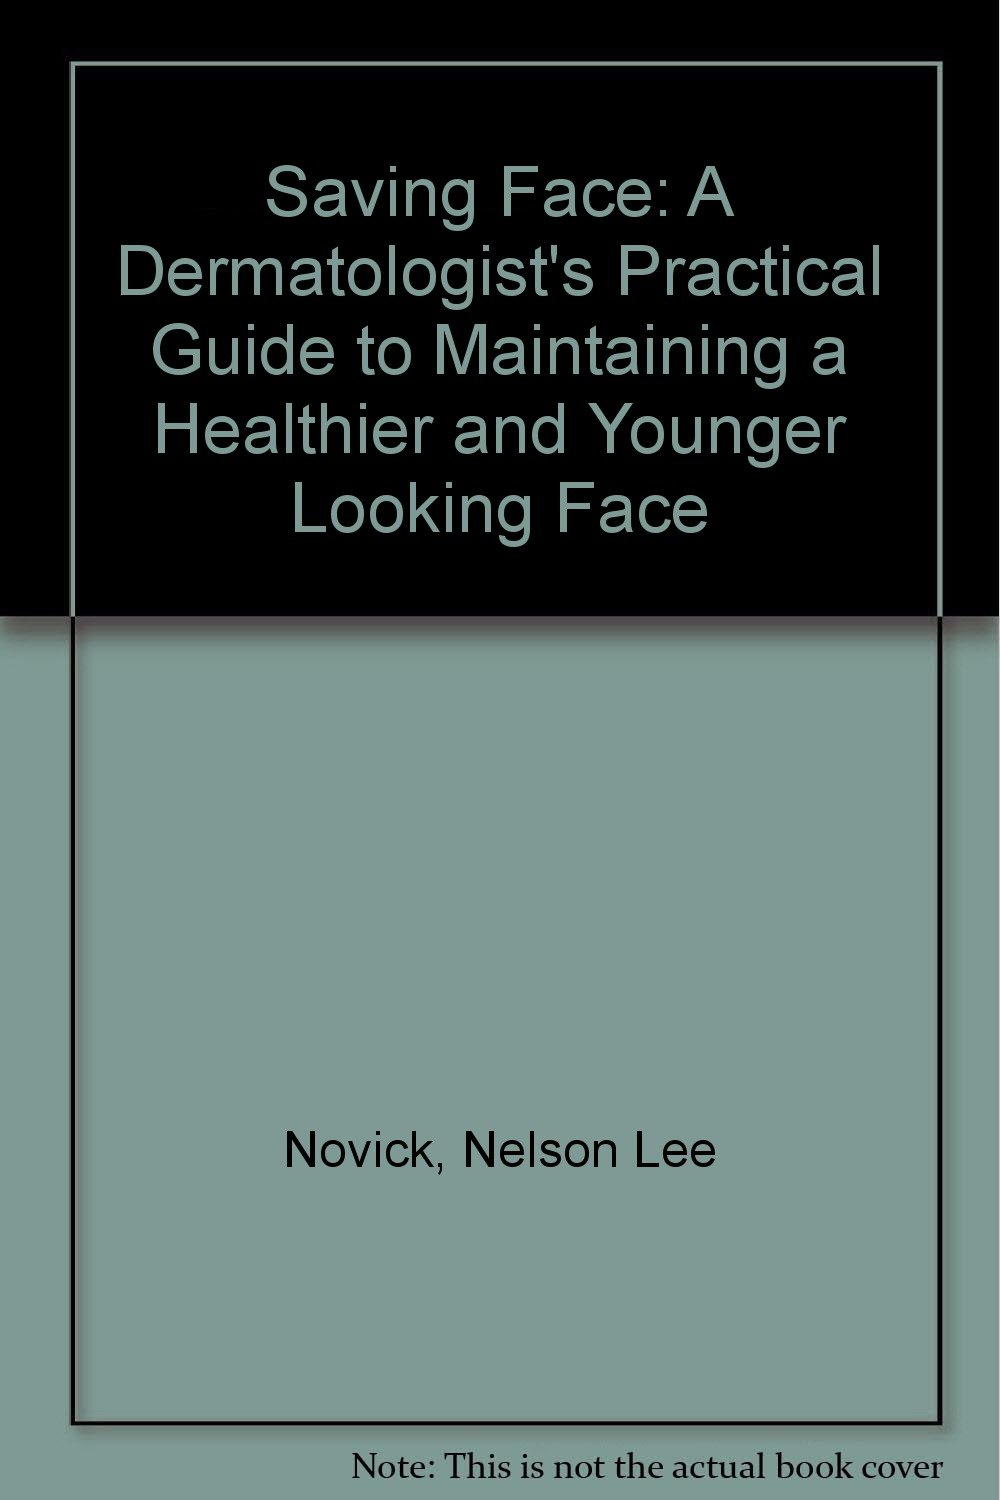 Saving Face: A Dermatologist's Practical Guide to Maintaining a